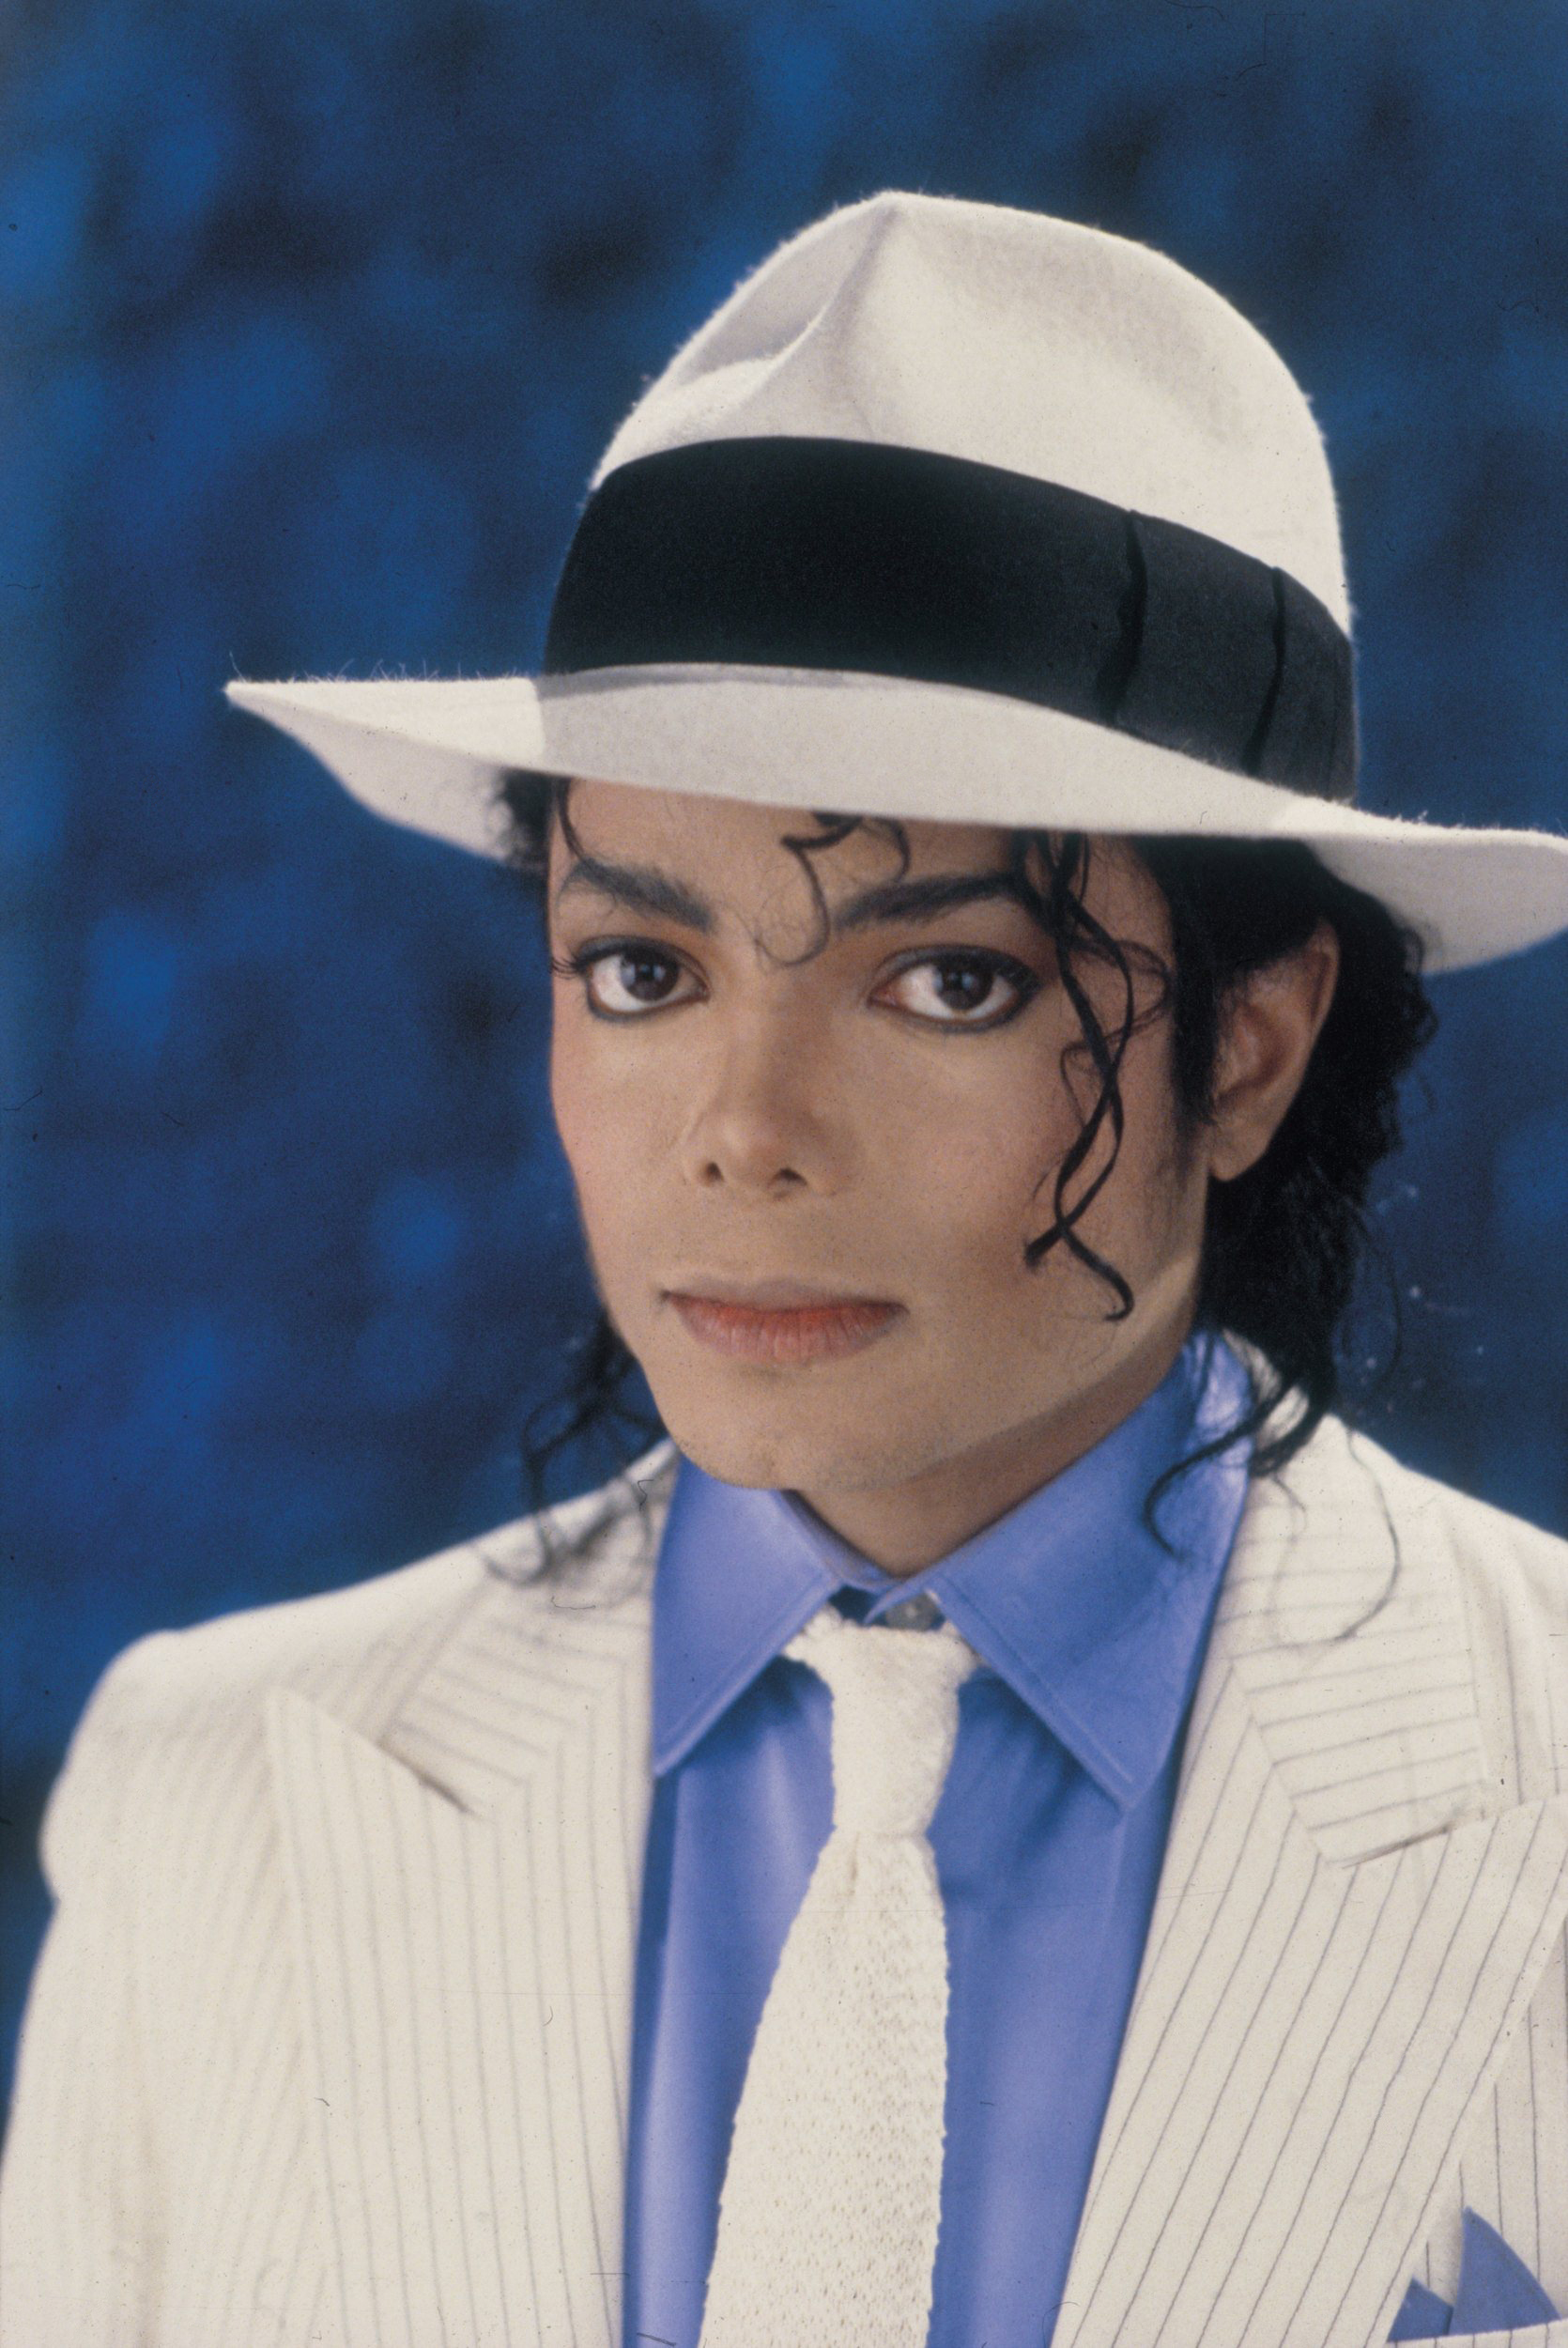 Michael Jackson (HQ = High Quality)